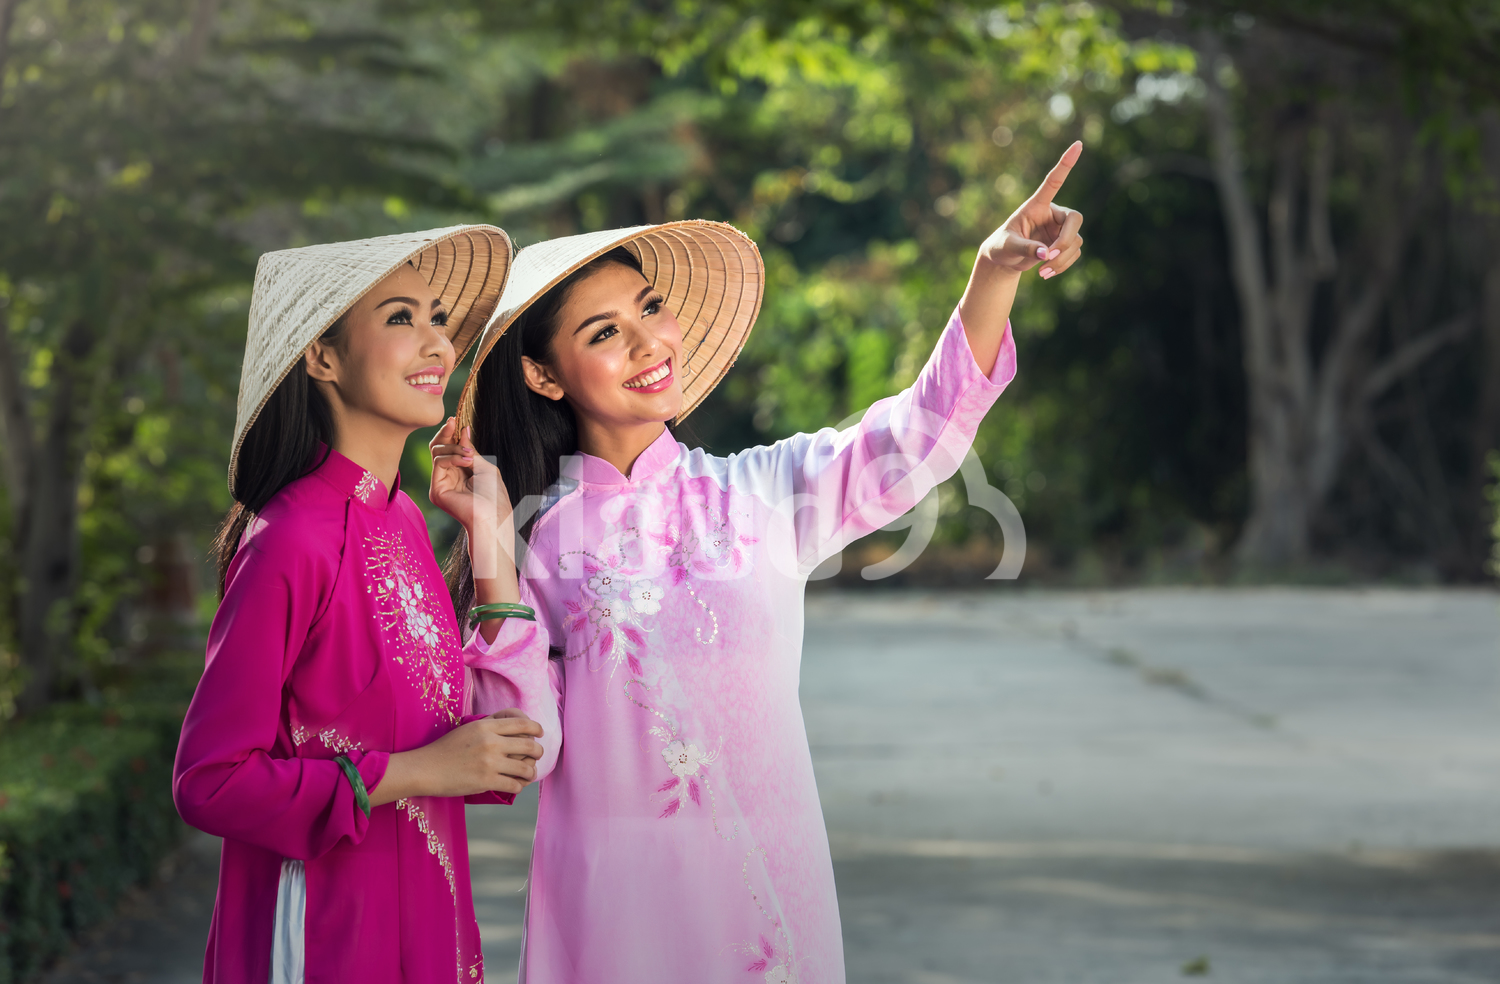 Portrait of Vietnamese girls in Ao Dai dresses